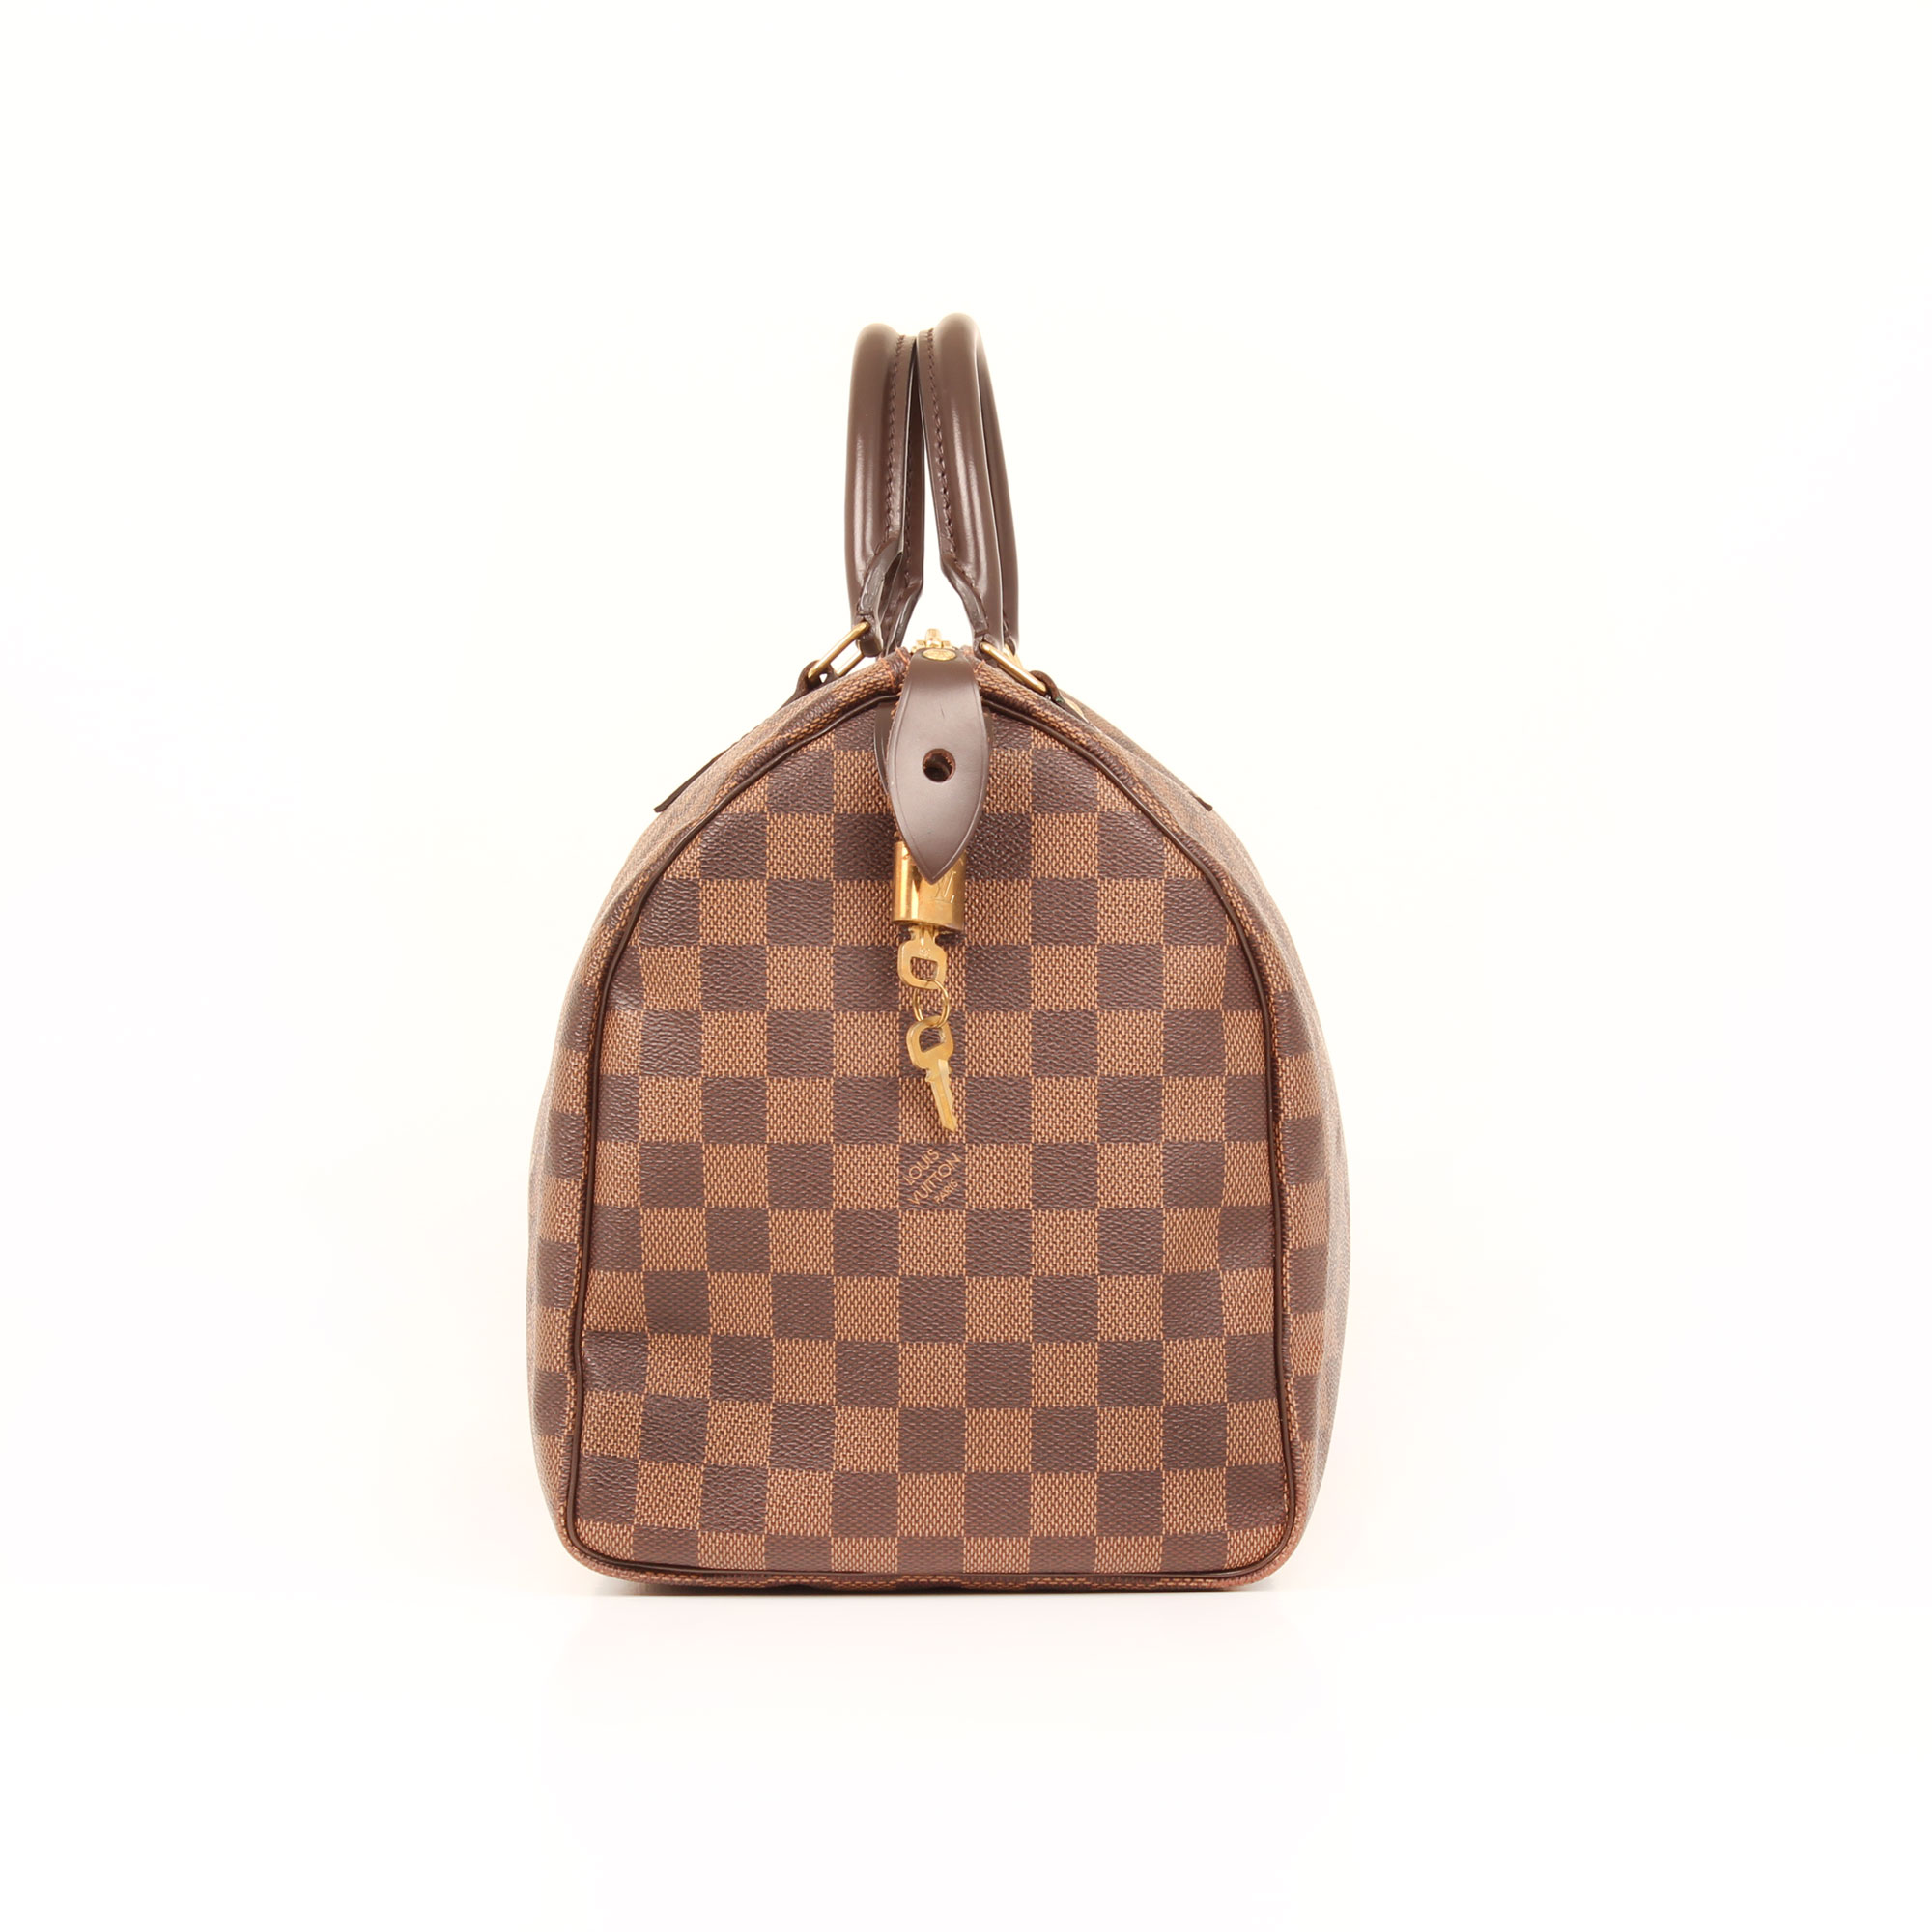 bag-louis-vuitton-speedy-35-damier-ebene-side